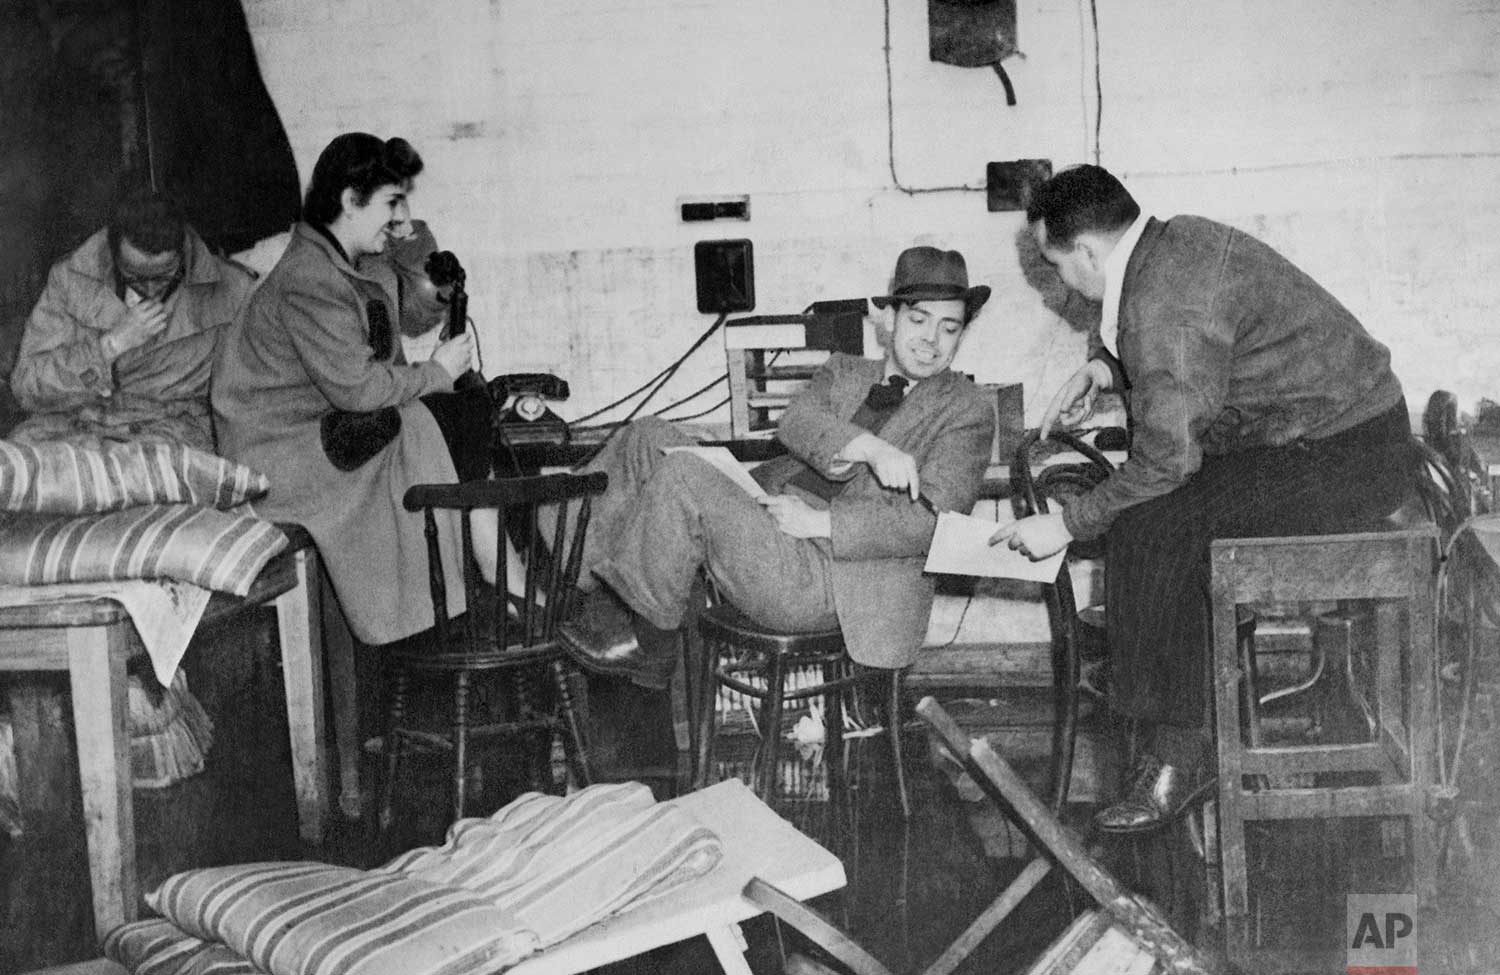 Members of the London staff of the Associated Press went ahead with their work, sending news to the world from temporary quarters in the flooded basement of The Associated Press building on Sept. 25, 1940 after a German bomb landed outside the front door. From left are: G.H.P. Anderson, Anne Keefe, Edwin Stout and Drew Middleton. (AP Photo)